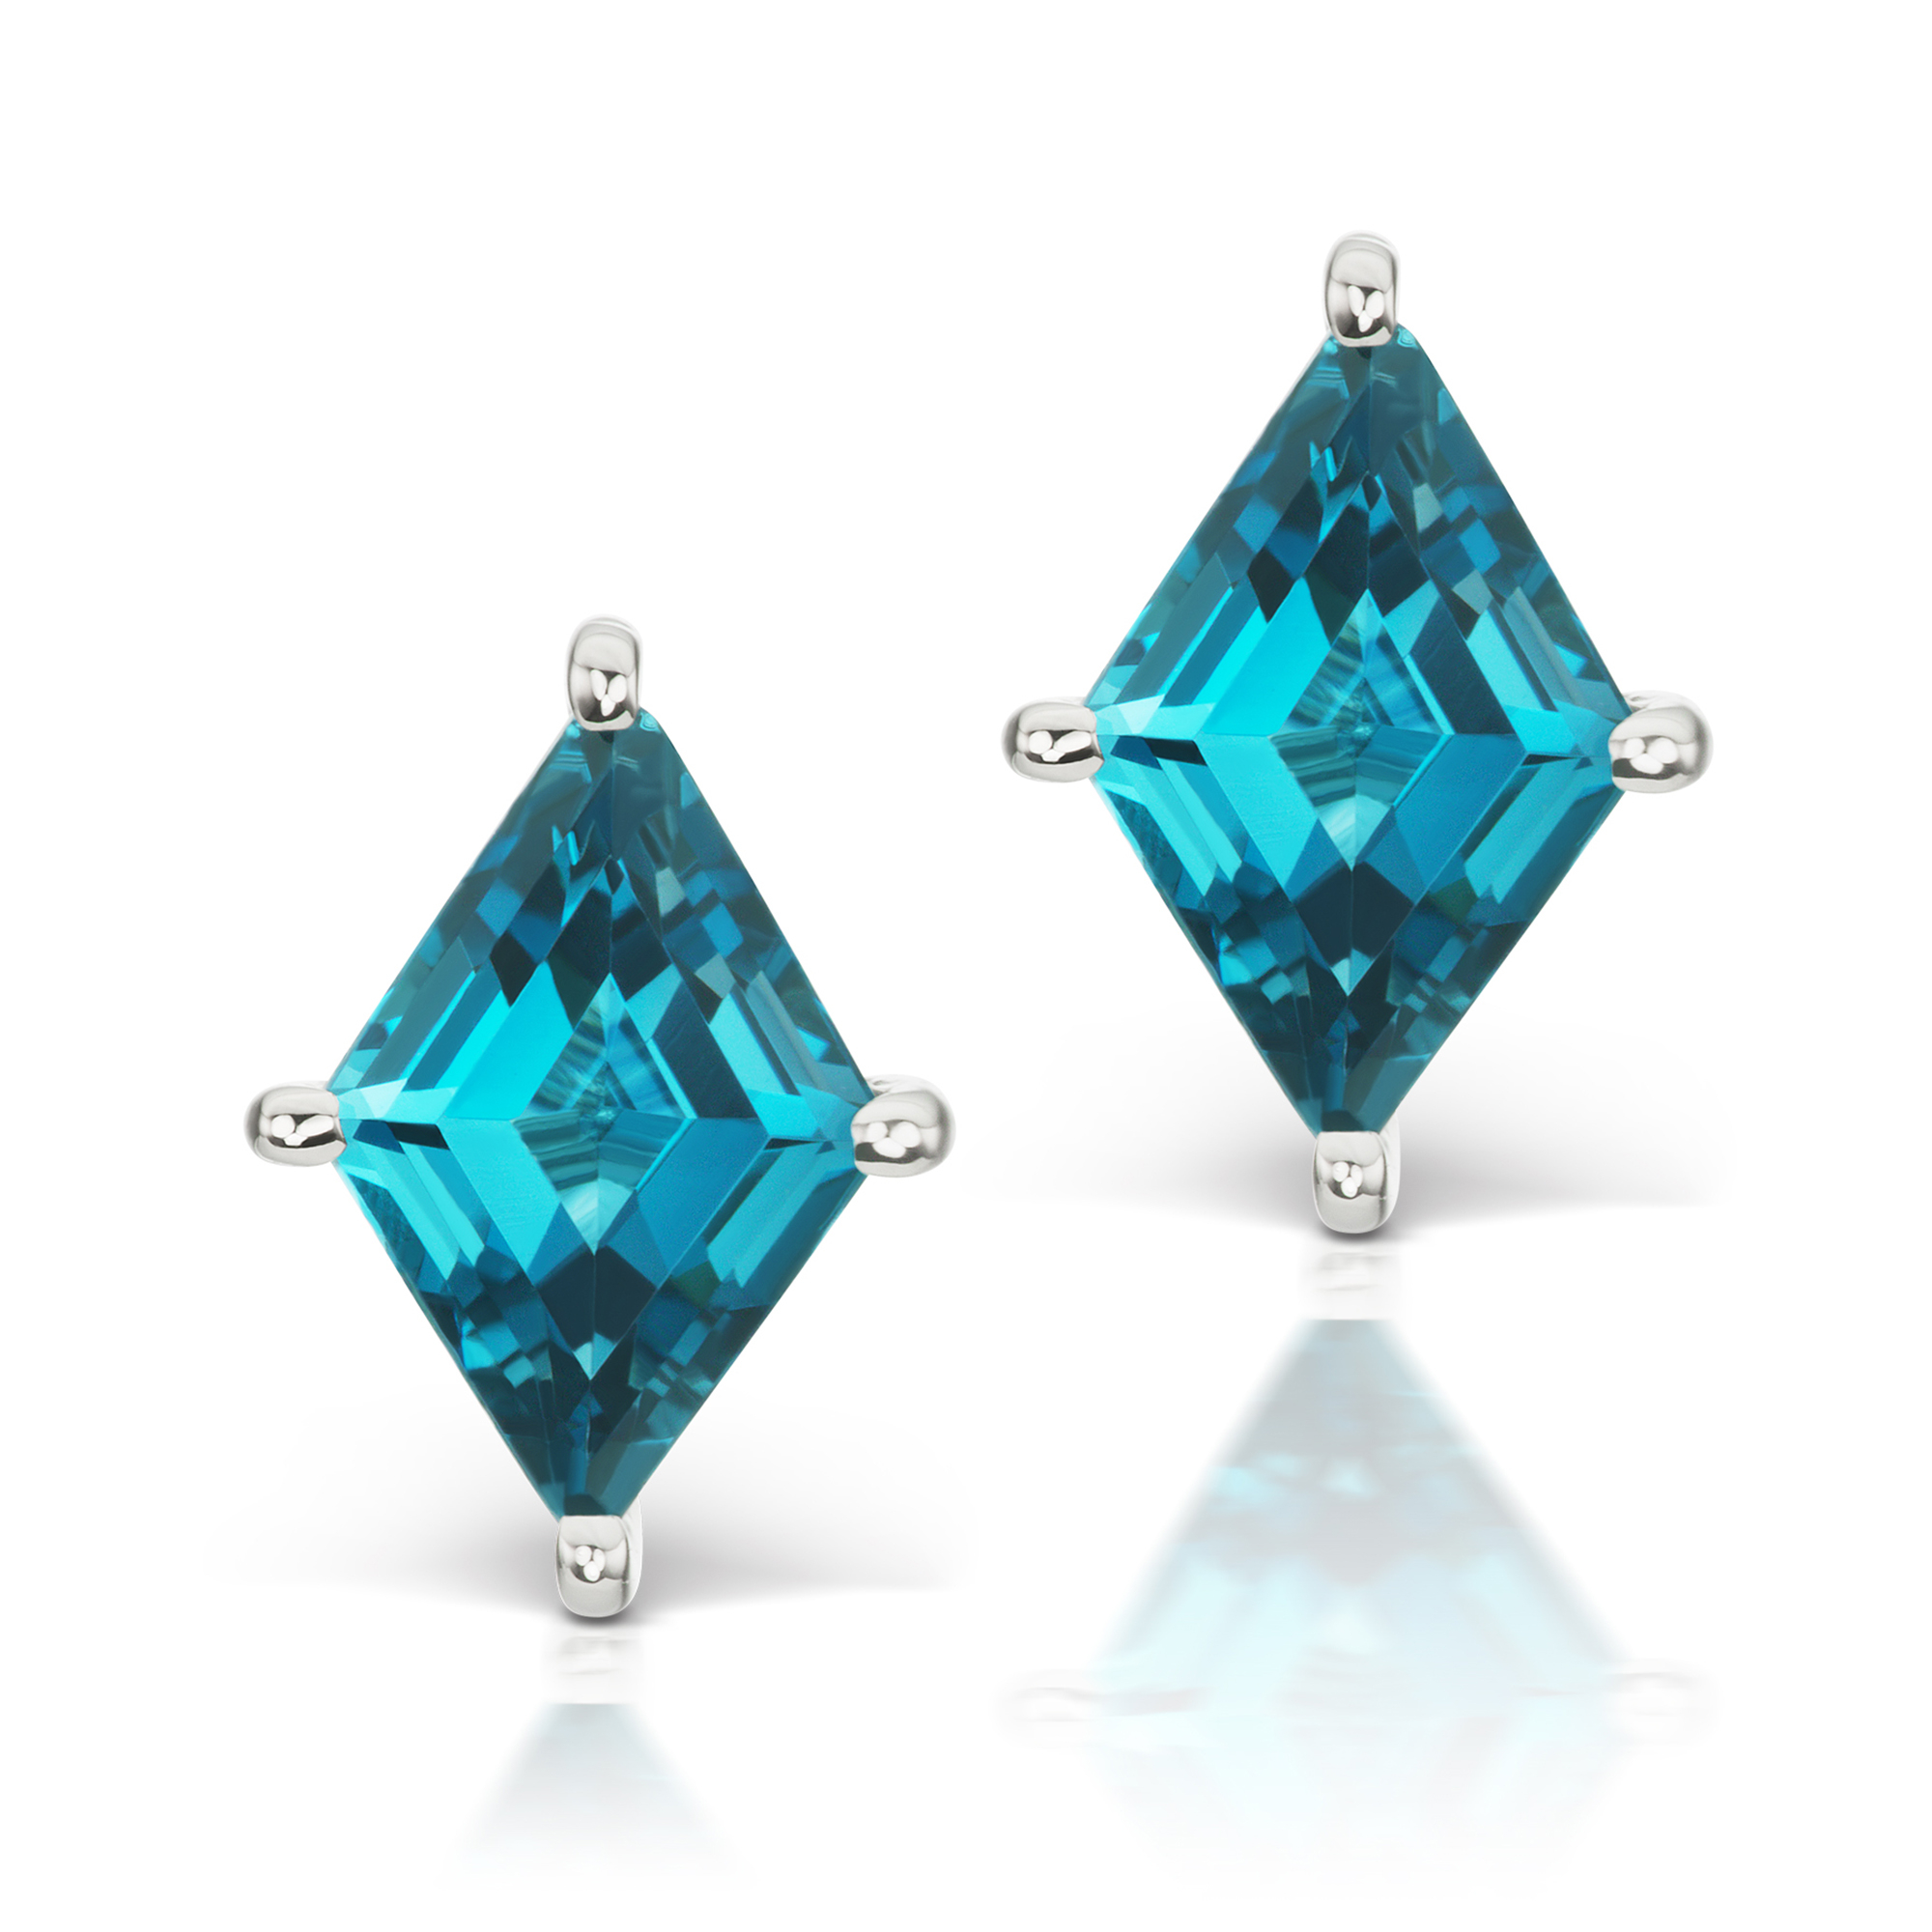 Jane Taylor London Blue Topaz Cirque Kite Stud Earrings